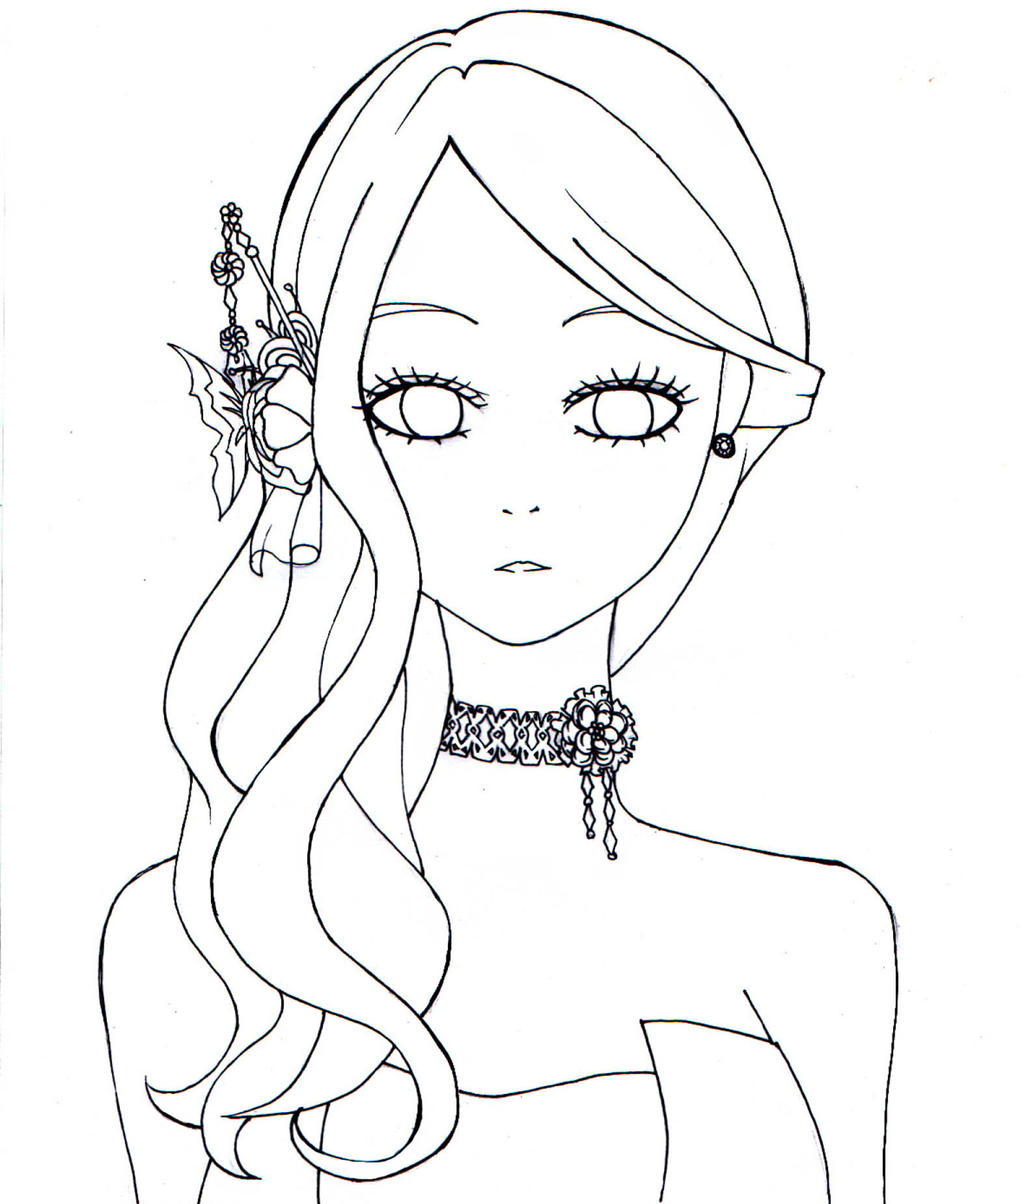 Line Art Work : My fair lady adeiona free line art by chubbycheeksmylove